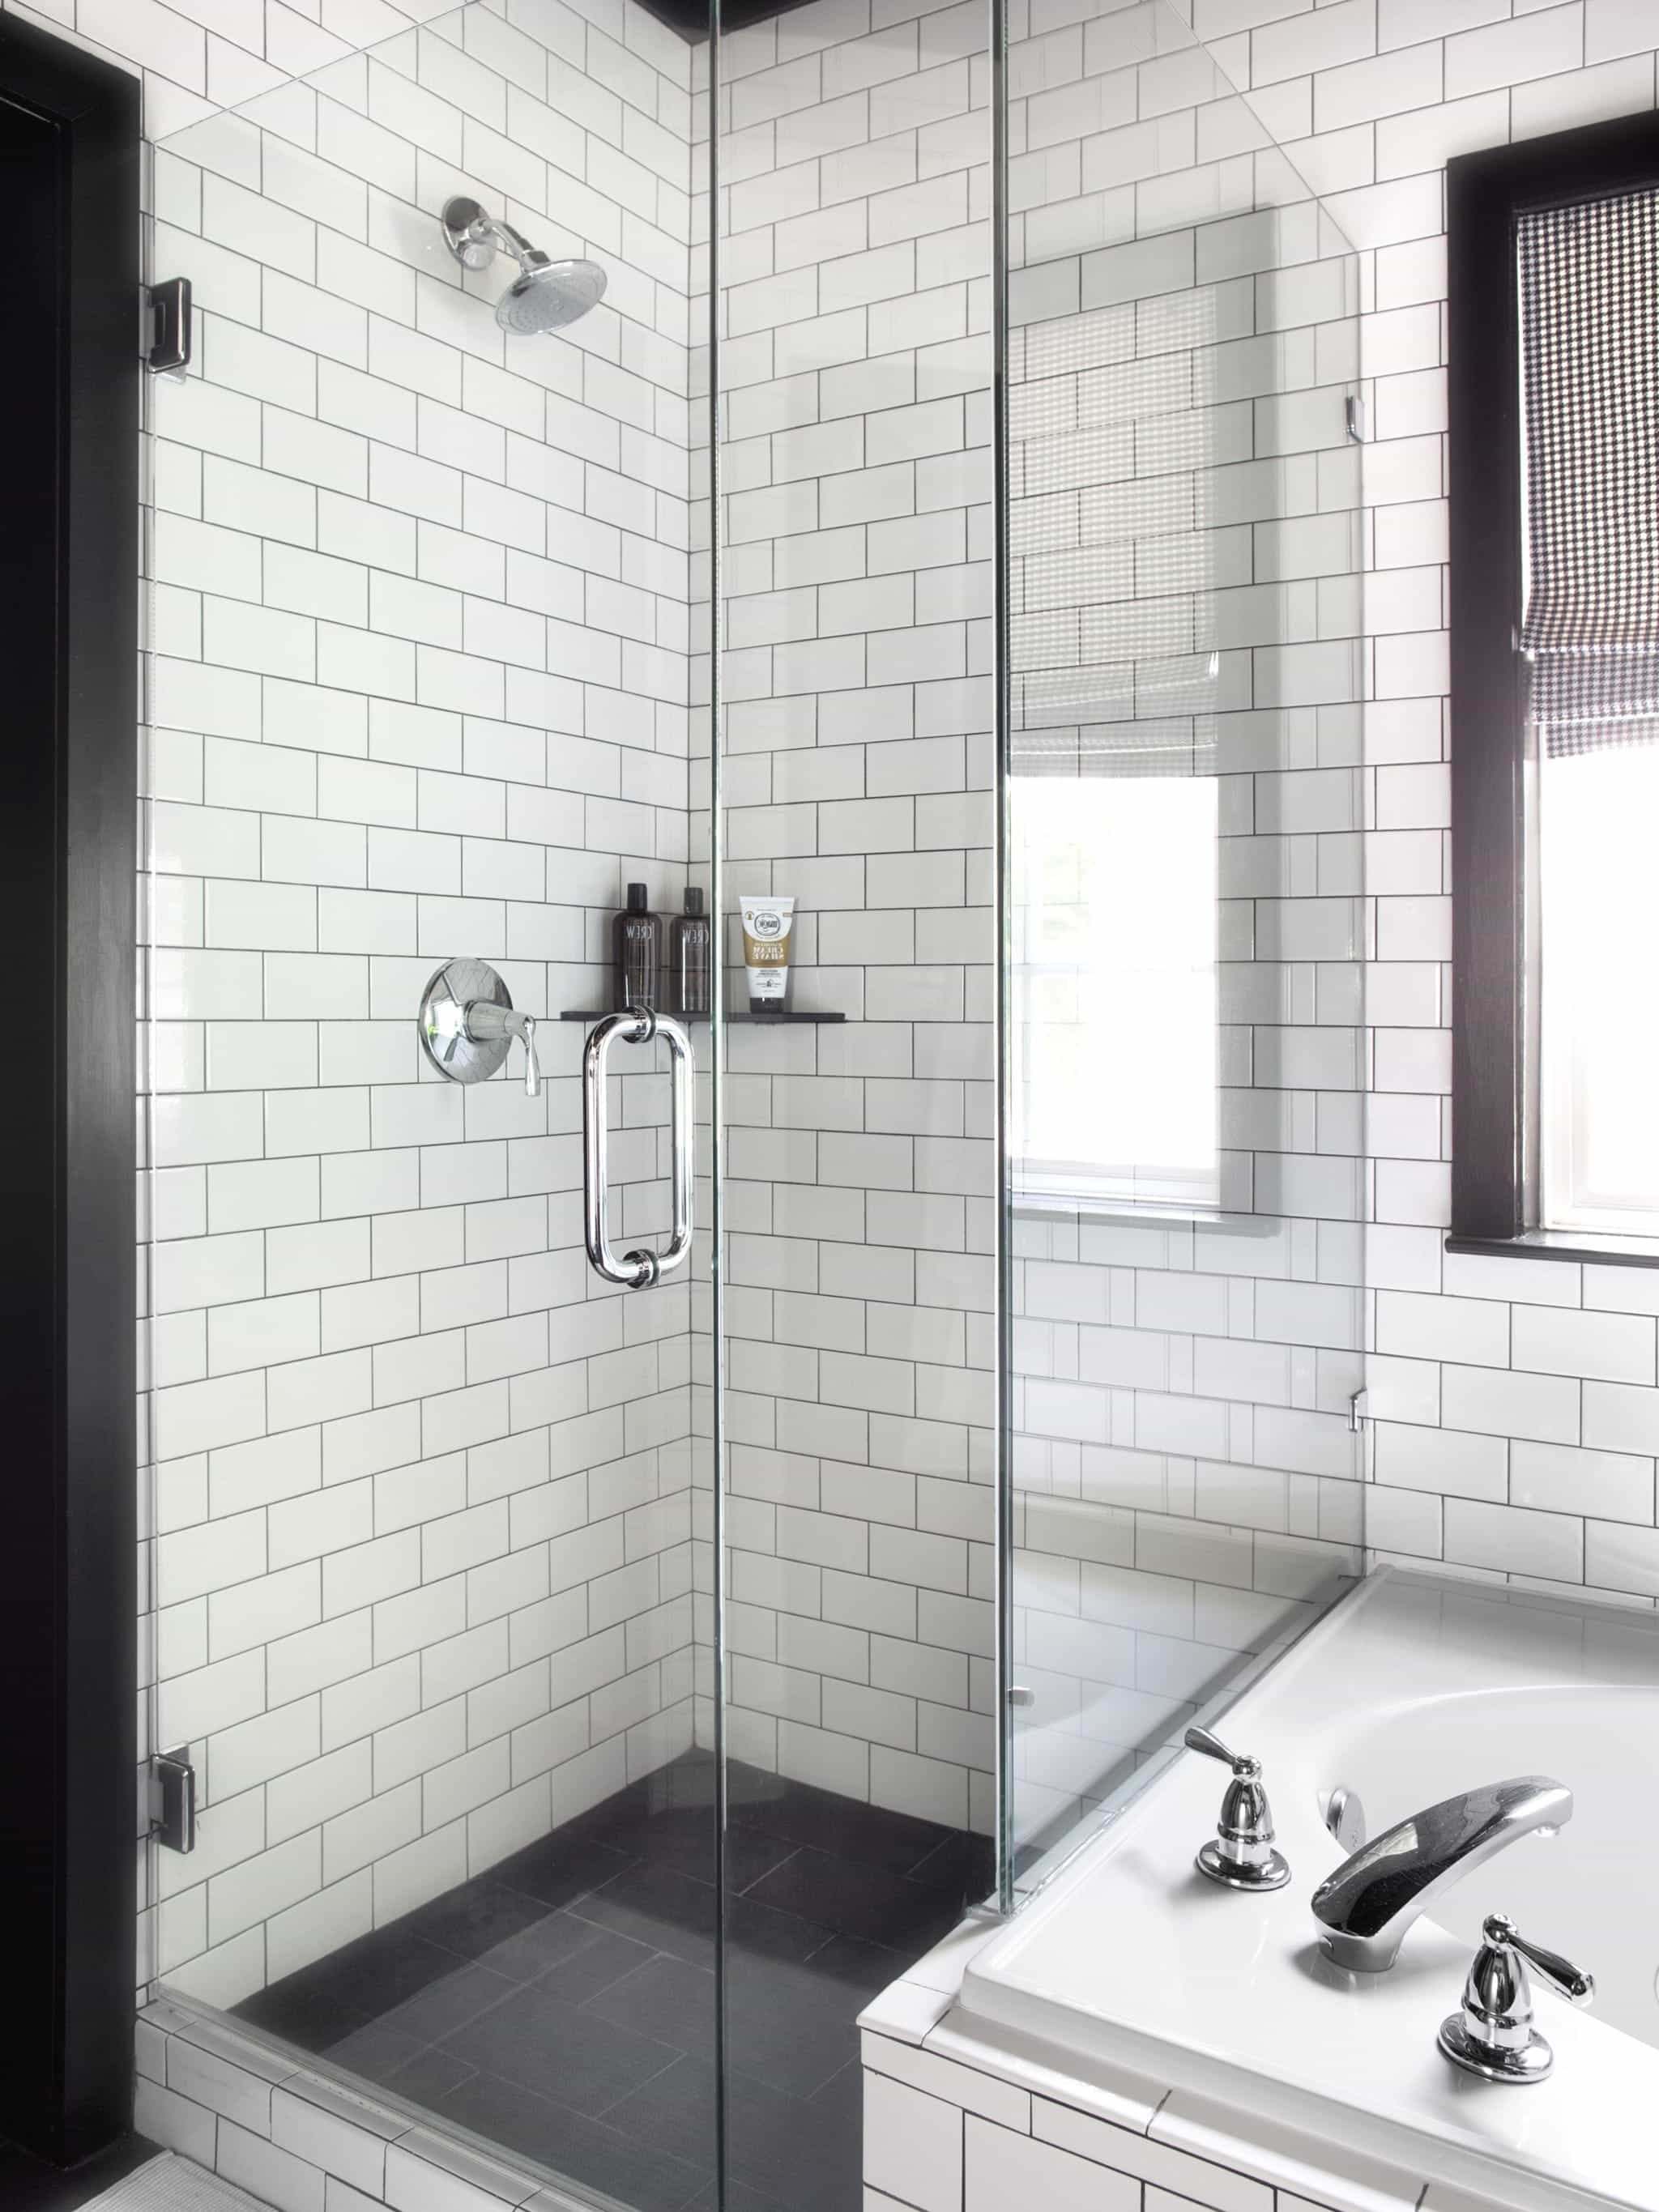 Black And White Contemporary Bathroom With Brick Pattern Tile (Image 2 of 20)